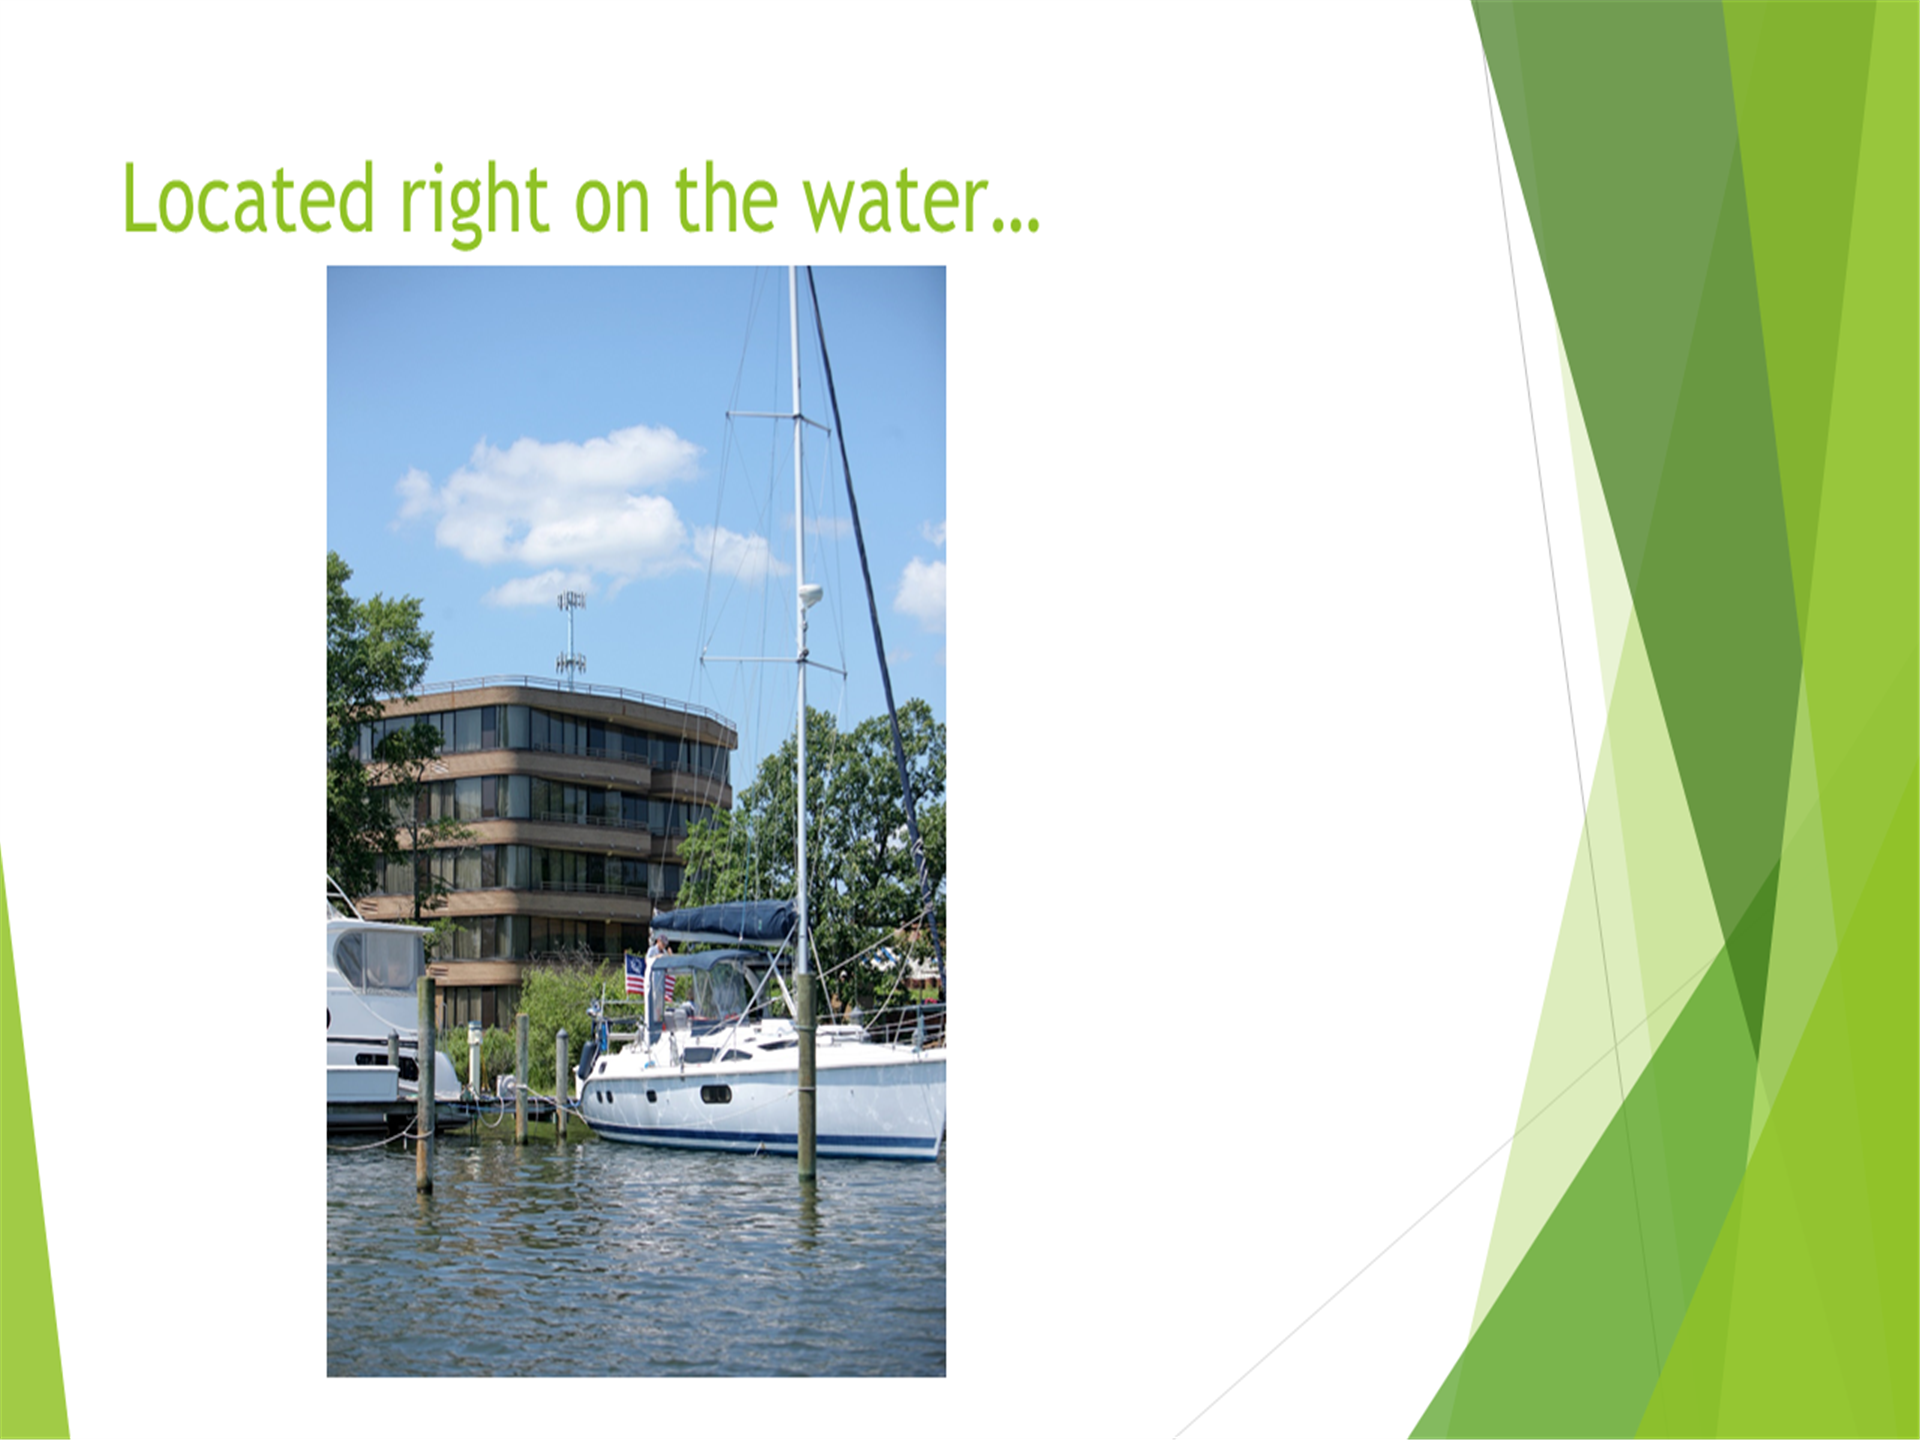 Located right on the water... Image of the marina